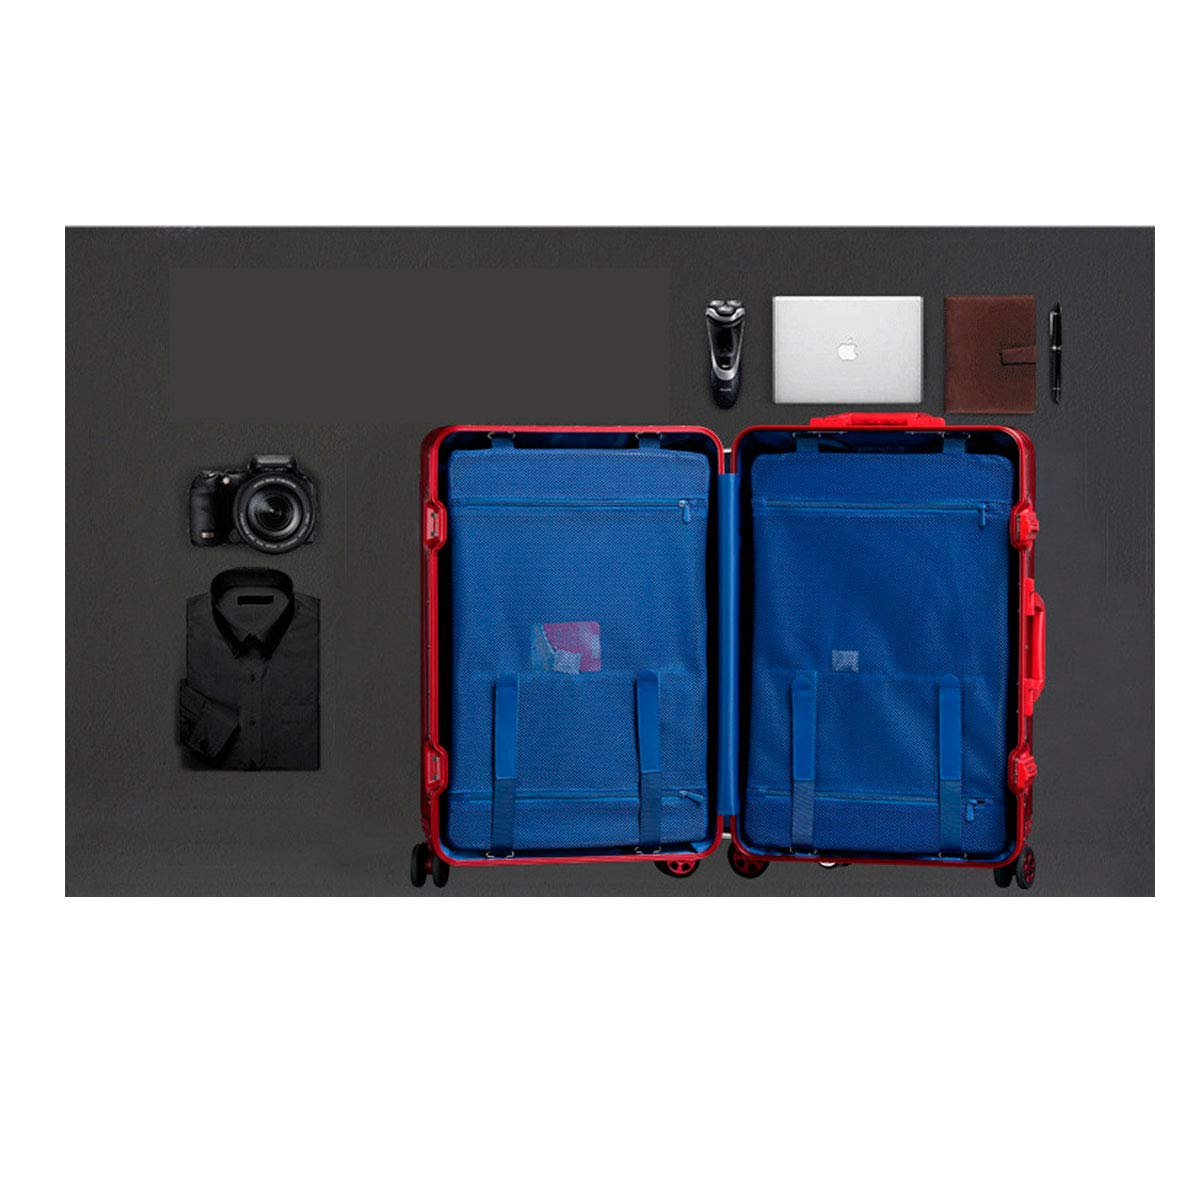 Suitcase 20 Inches Travel Essential Luggage Kehuitong Hard Travel Bag Travel Organizer Color : Red, Size : 20 Inches Blue Trolley Case Simple